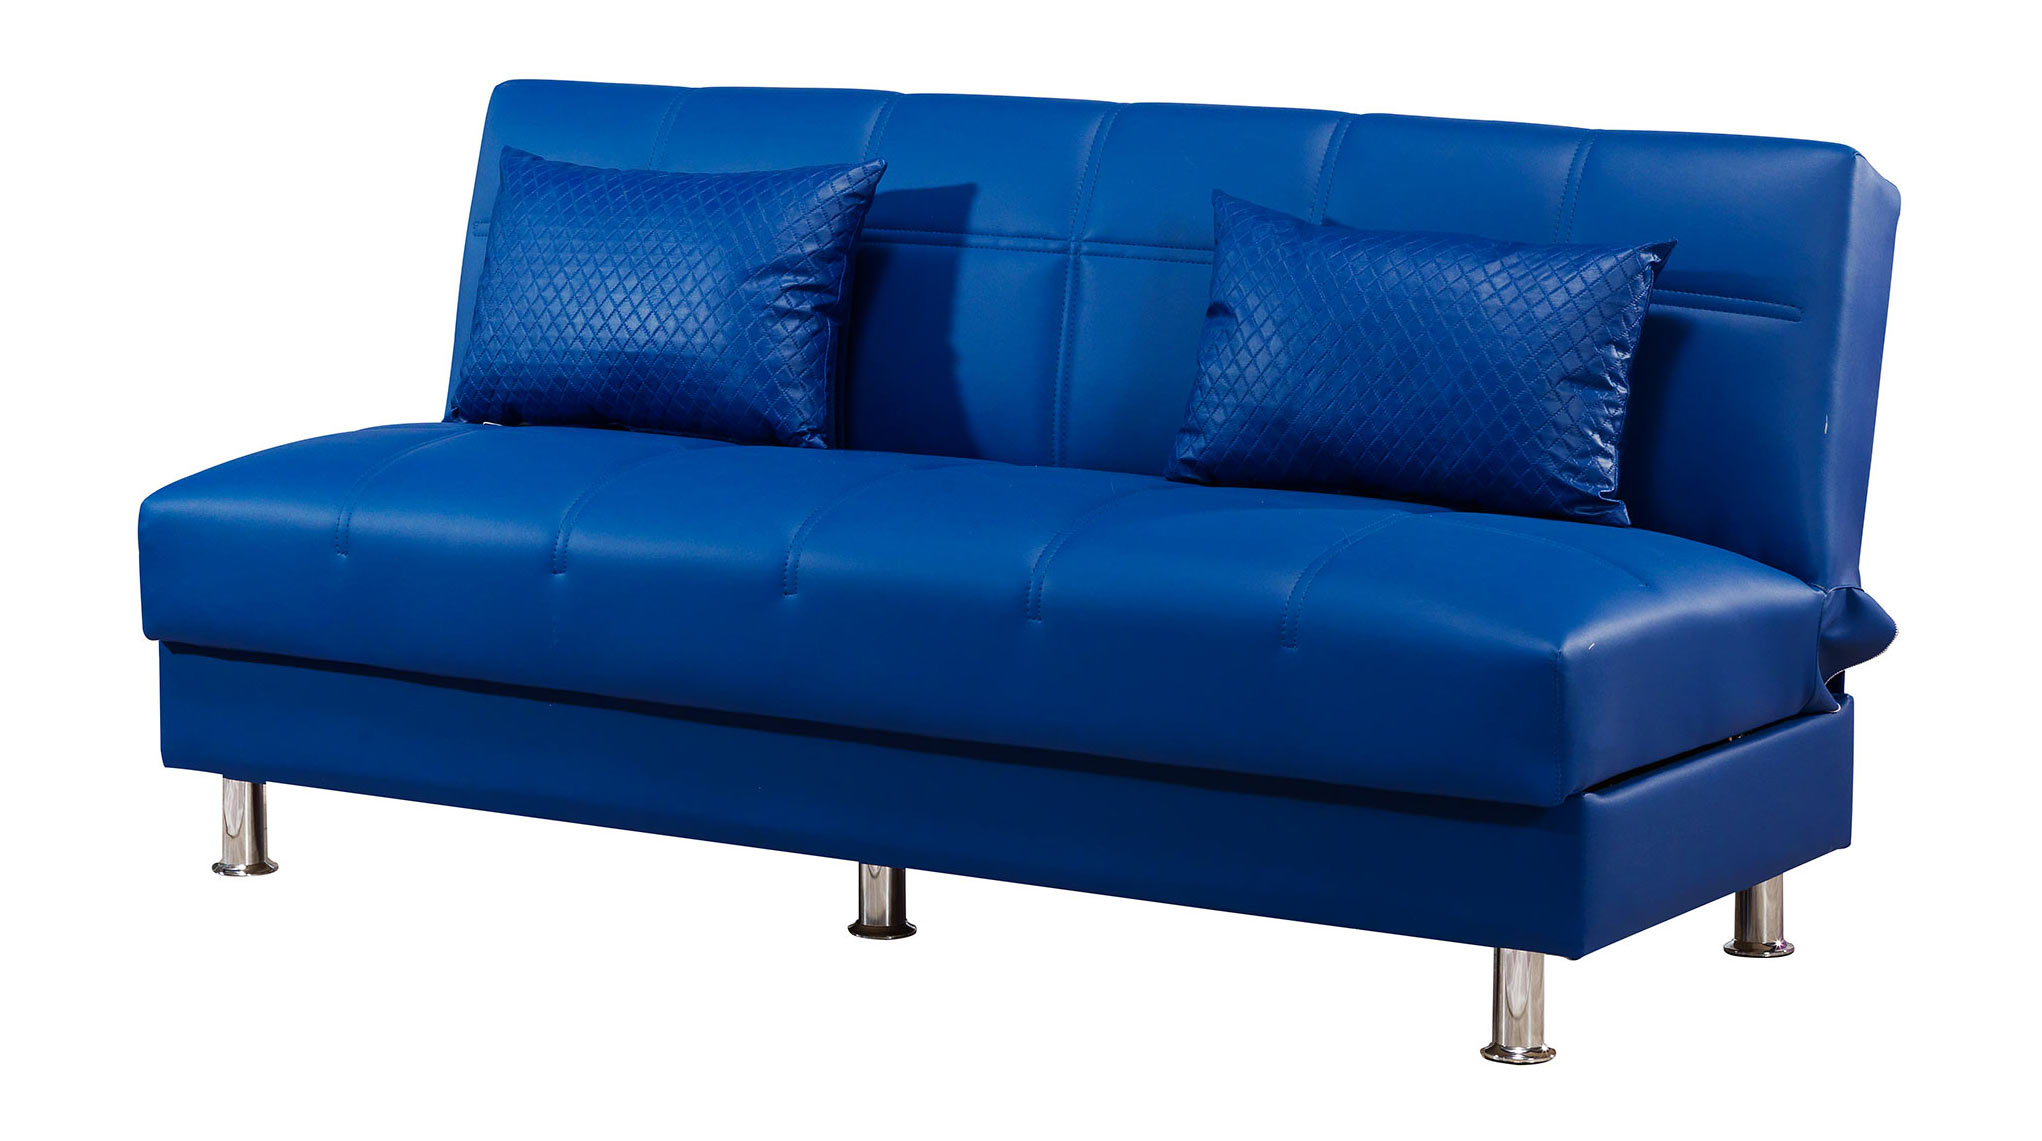 Eco Rest Zen Navy Leatherette Sofa by Casamode